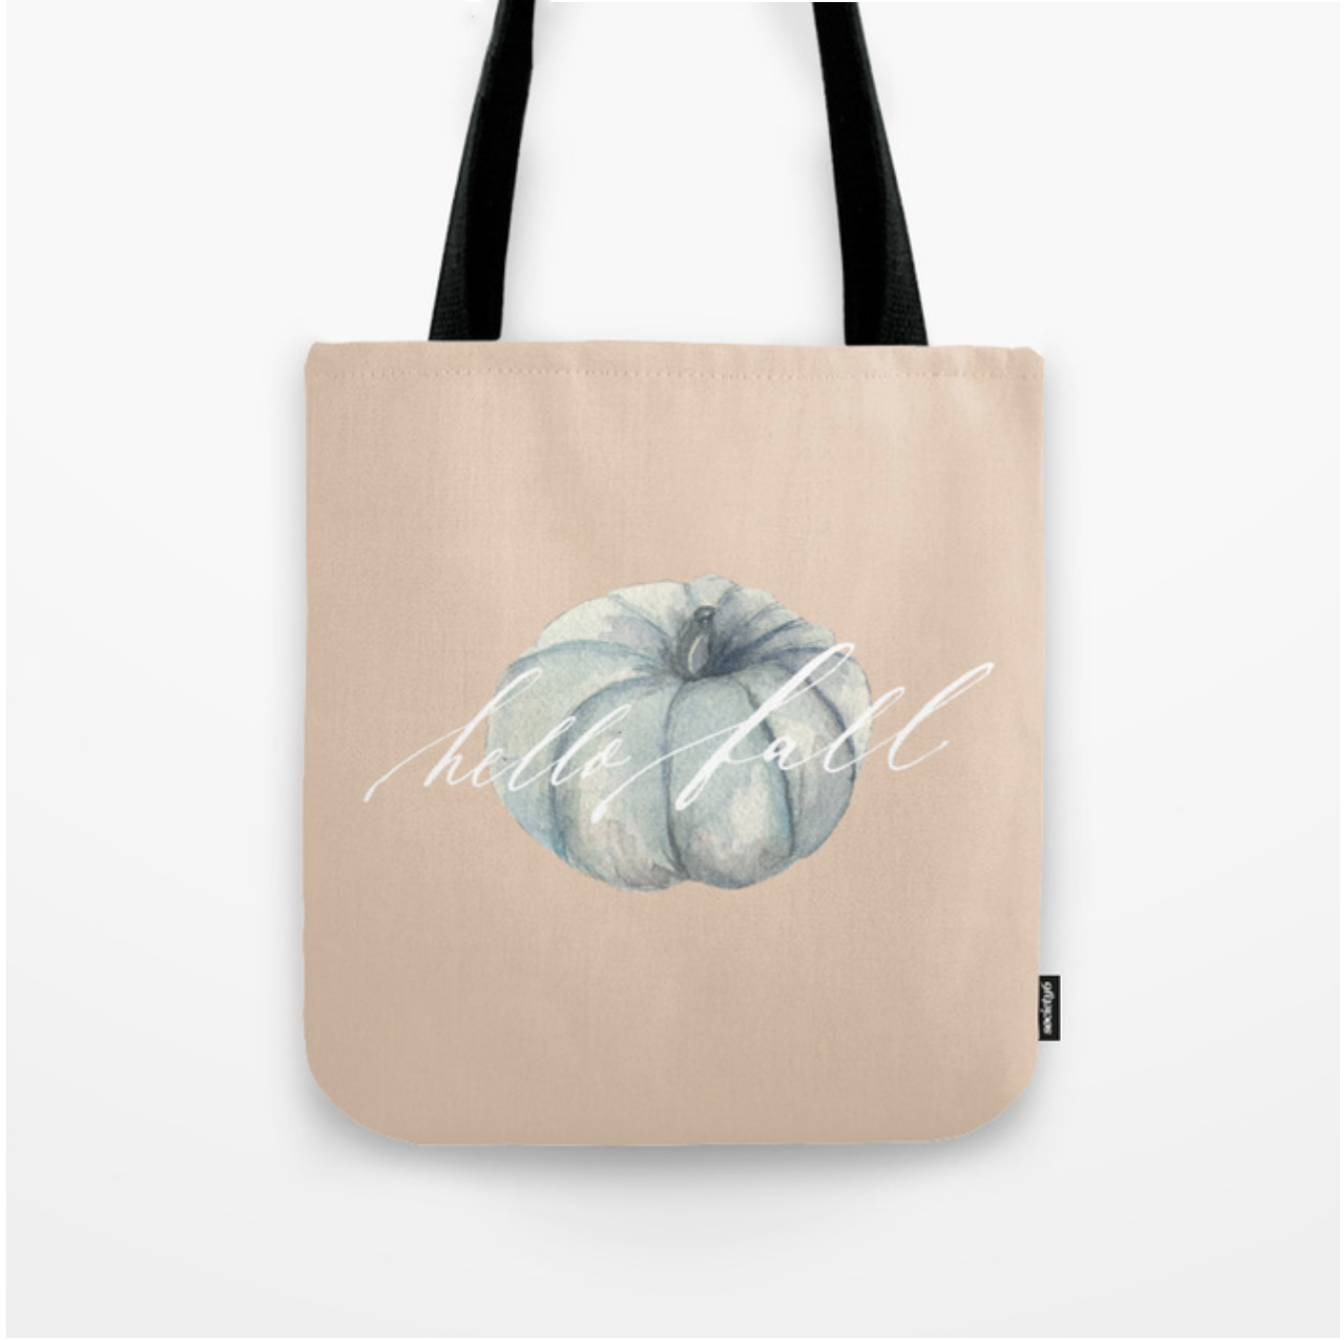 Heirloom Blue Teal Mint Pumpkin with Hello Fall and Blush Background Tote Bag | Lauren Antoniaa on Society 6